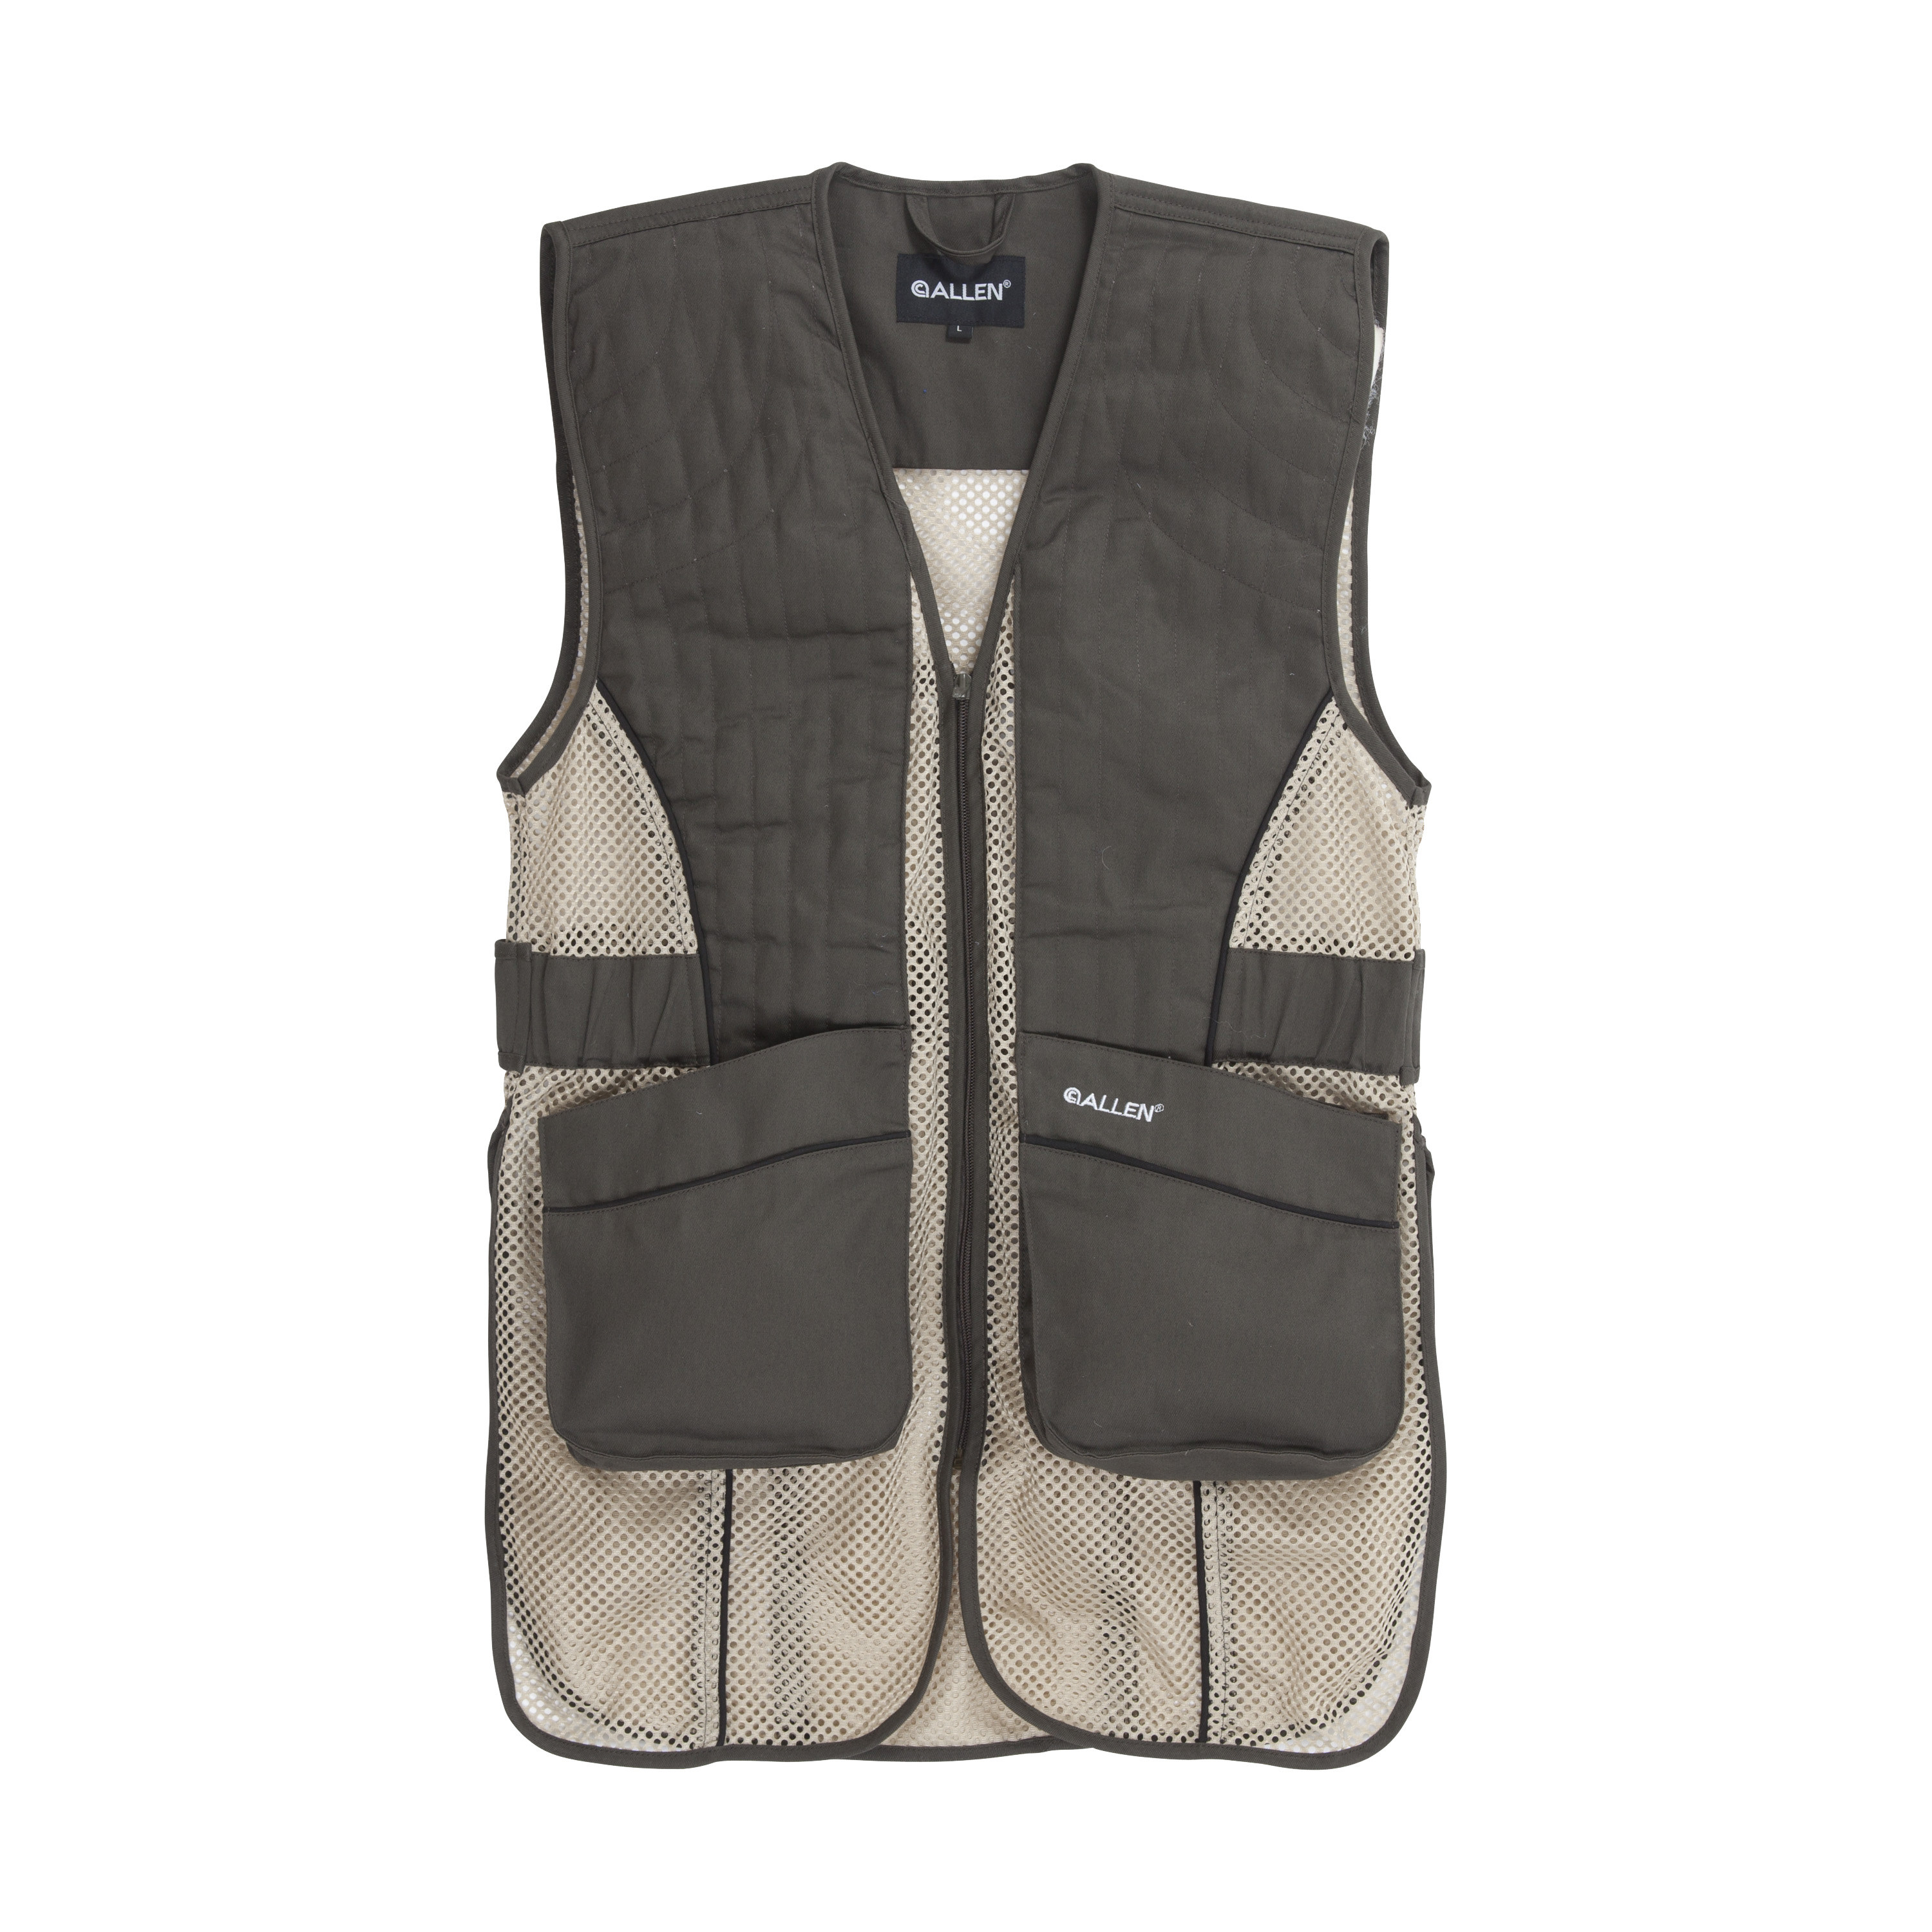 Ace Shooting Vest Medium/Large, Ambidextrous by by Allen Company